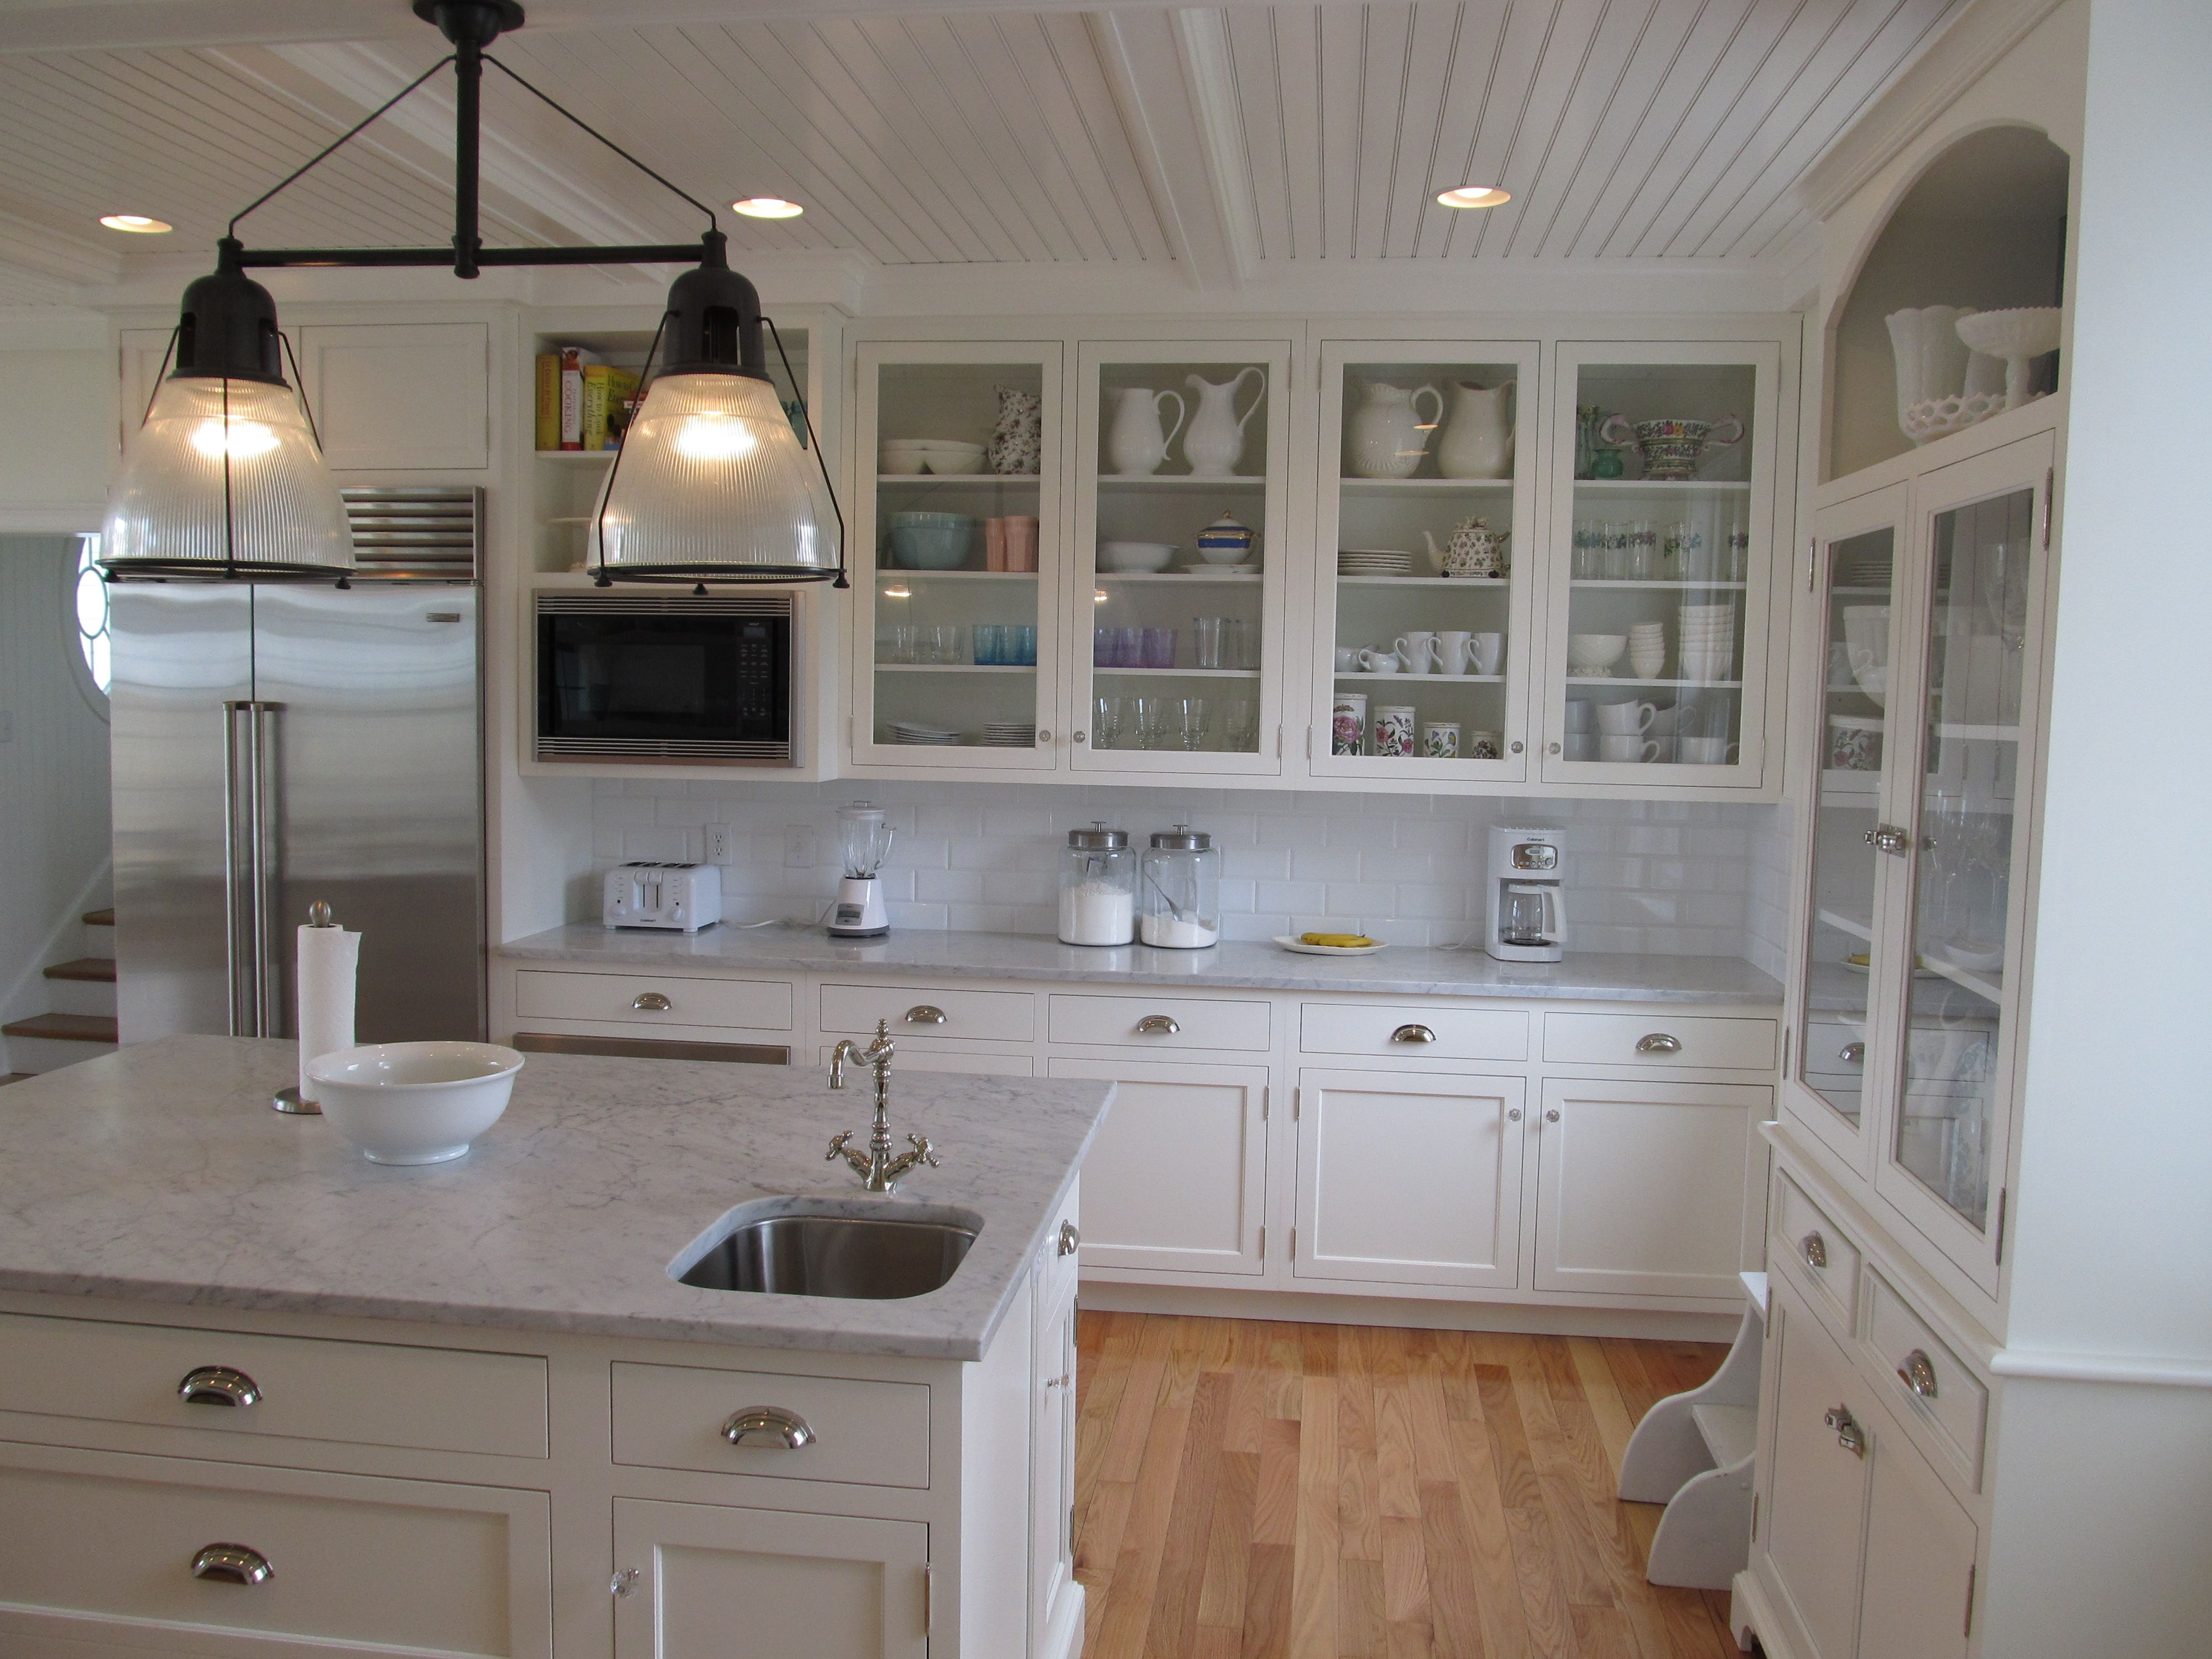 Merveilleux Custom Kitchen Designed By Churchville Kitchen U0026 Home Design, White Painted  Cabinetry, Wood Paneled